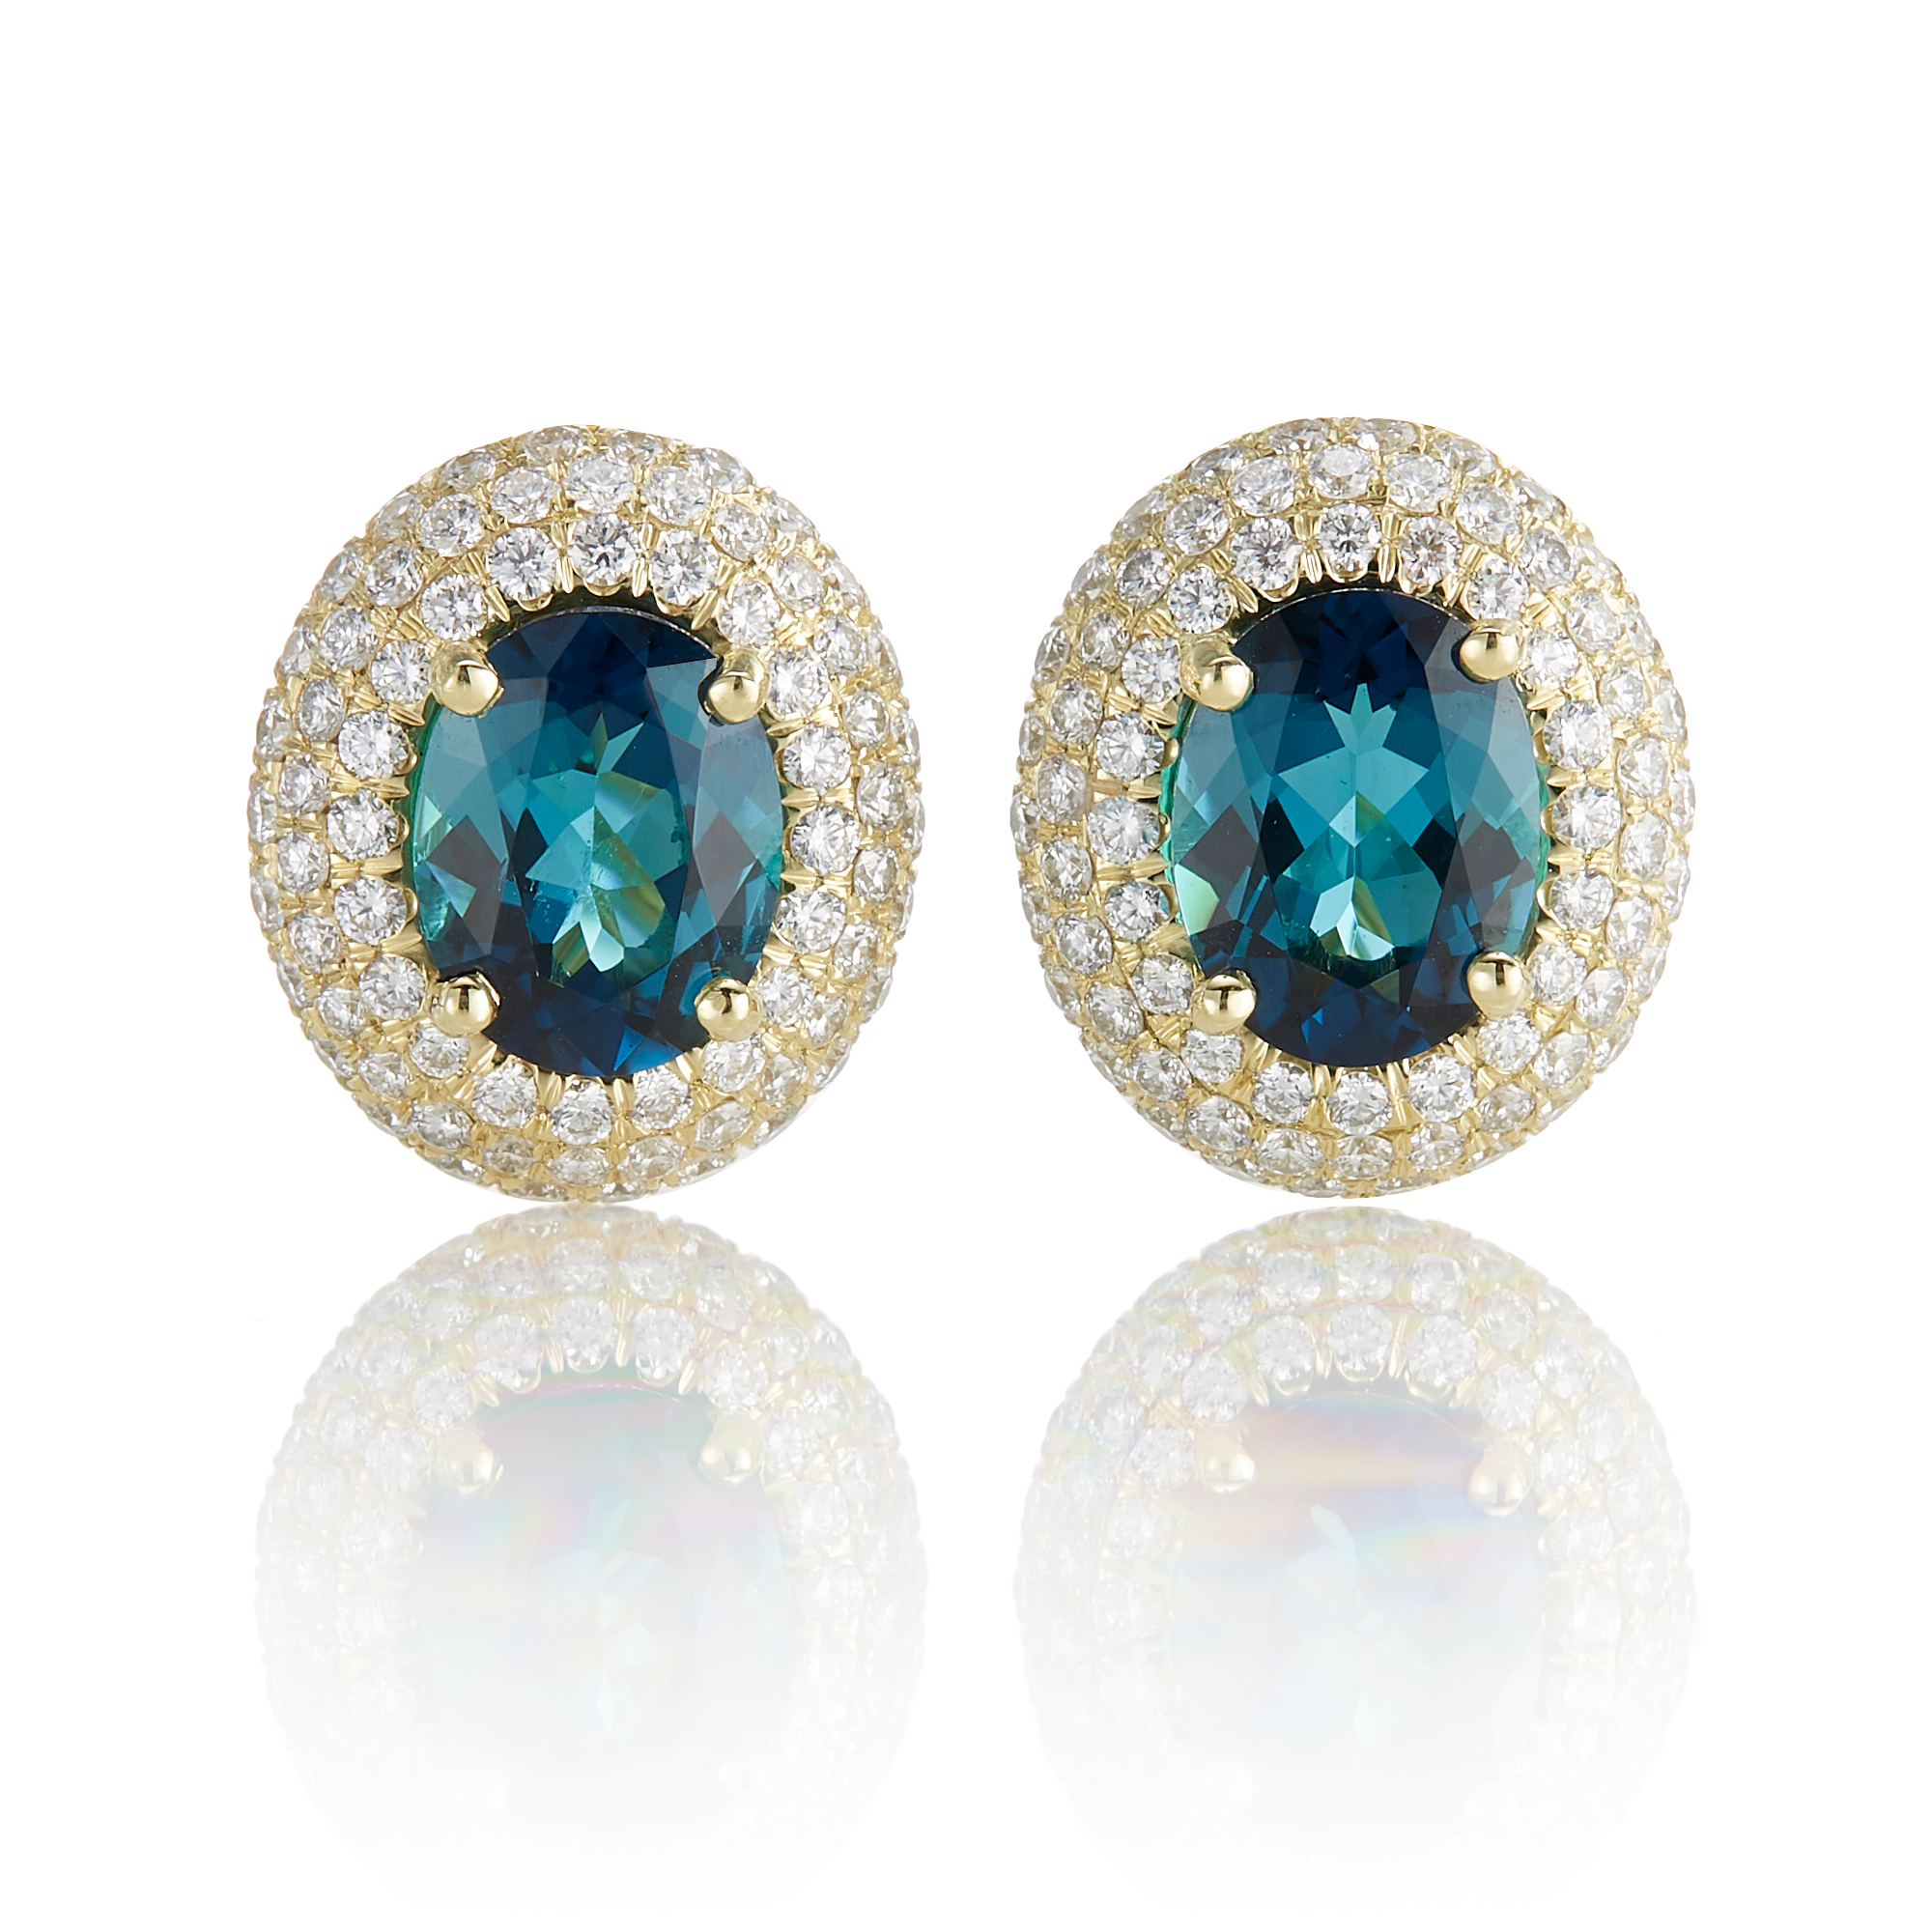 Gump's Oval Faceted Indicolite Tourmaline with Triple Halo of Diamond Earrings